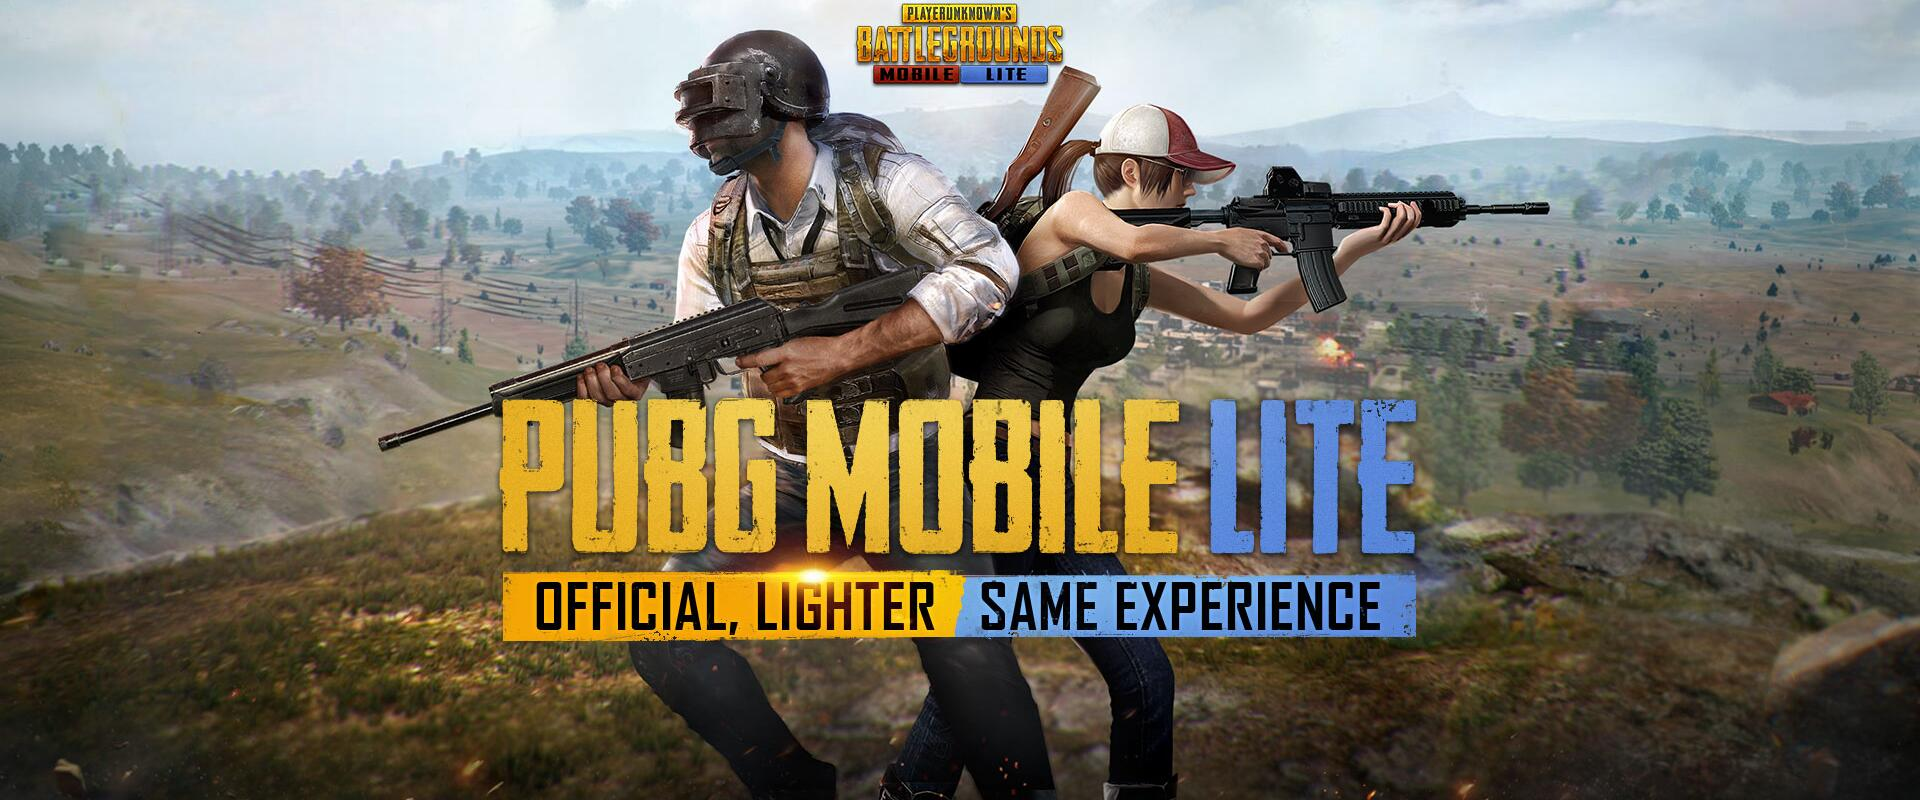 Download PUBG MOBILE LITE on PC (Emulator) - LDPlayer